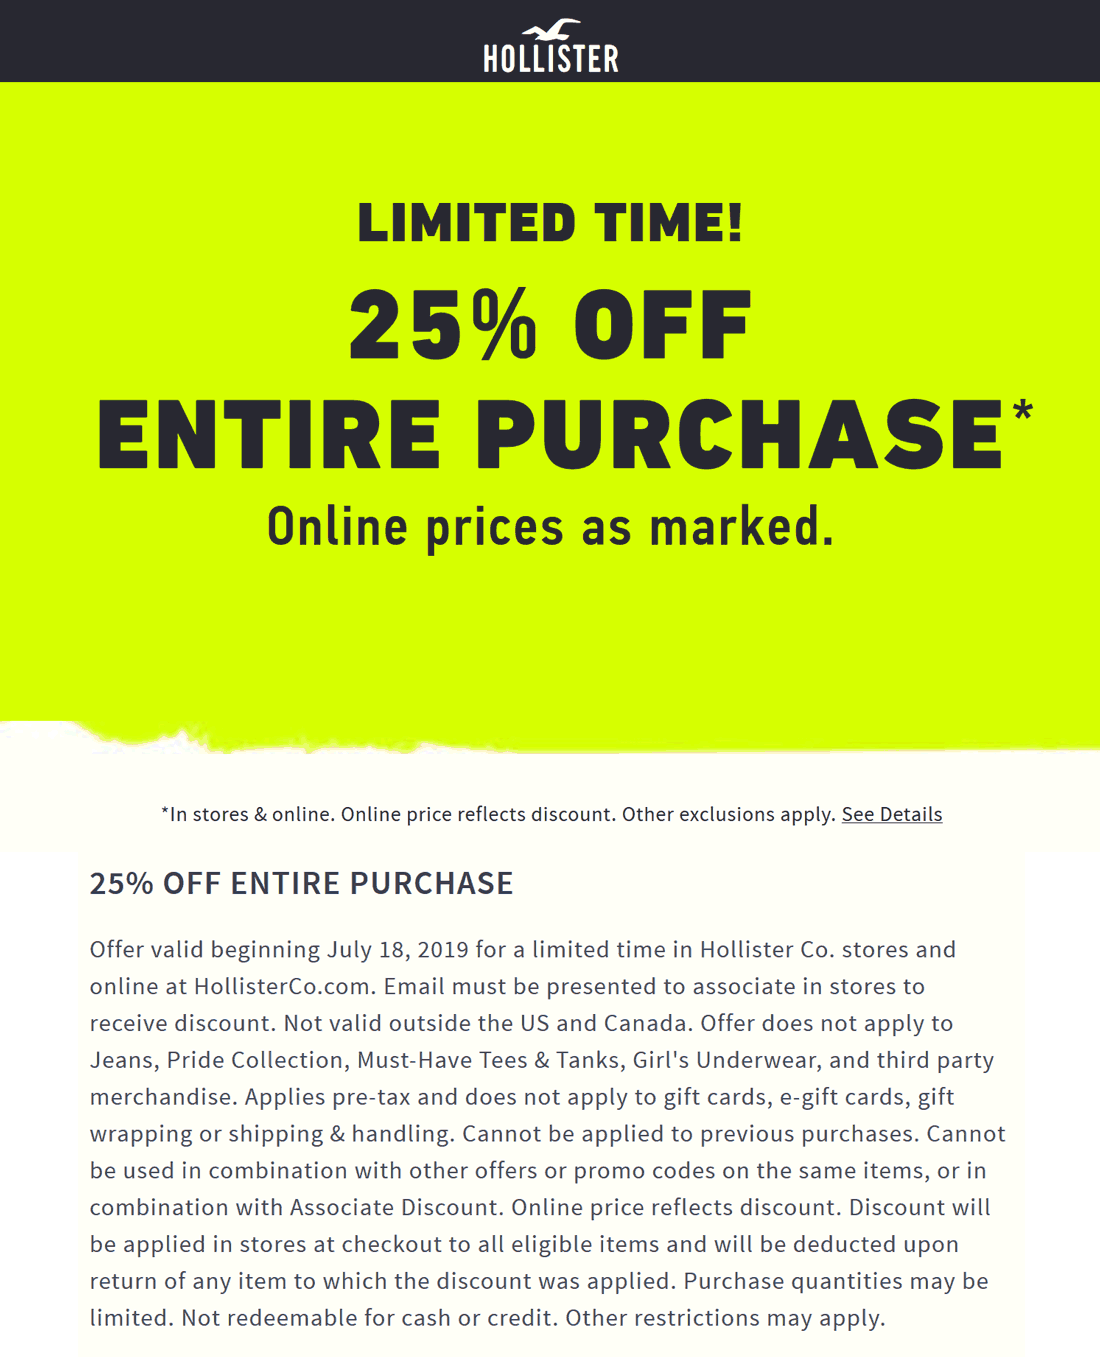 Hollister Coupon February 2020 25% off at Hollister, ditto online